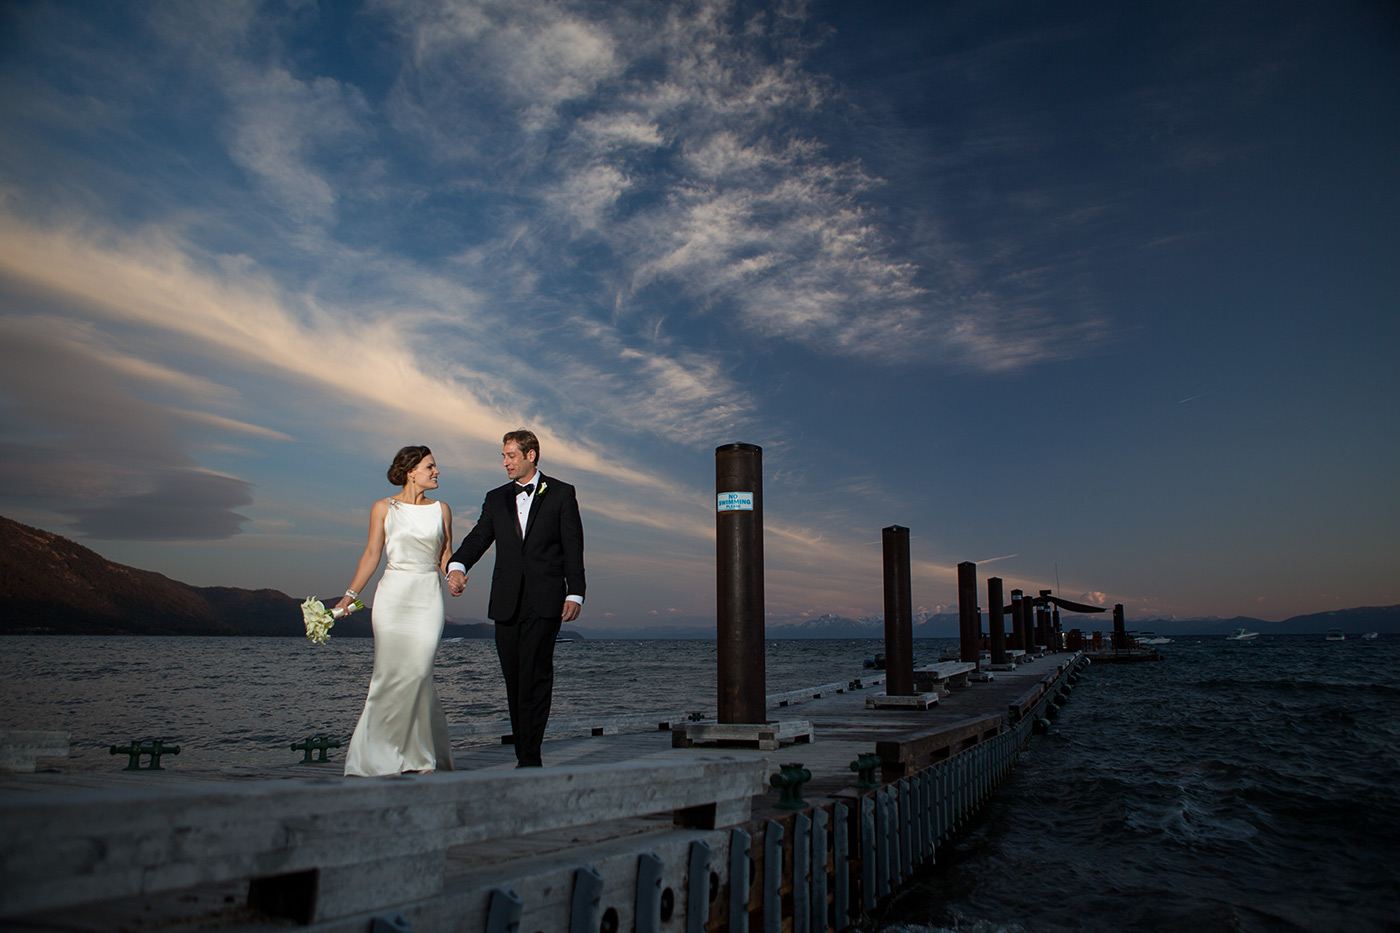 hyatt lake tahoe wedding photo